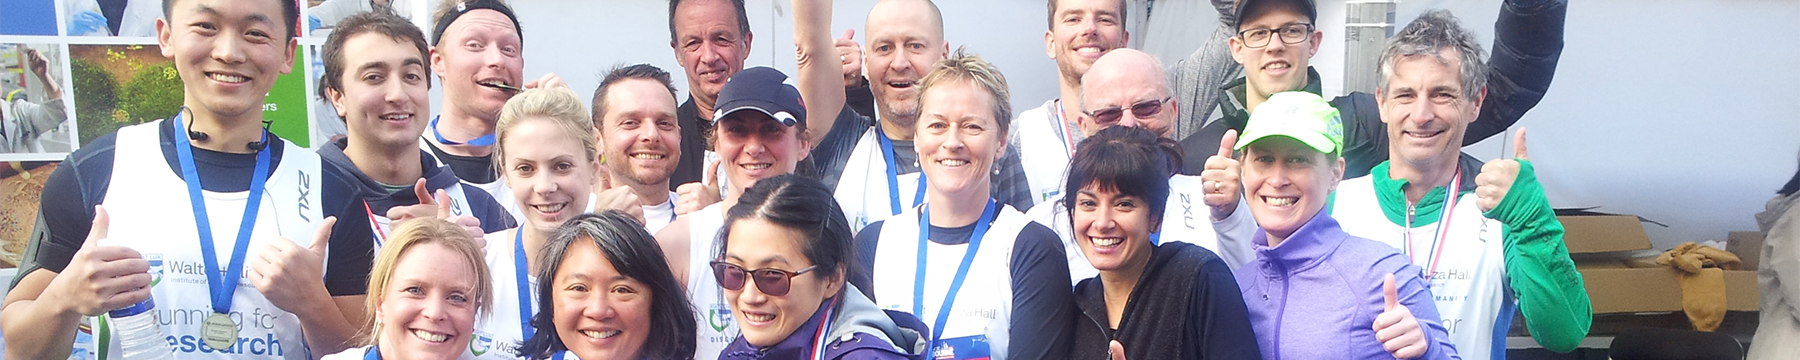 Run Melbourne team raising money for research